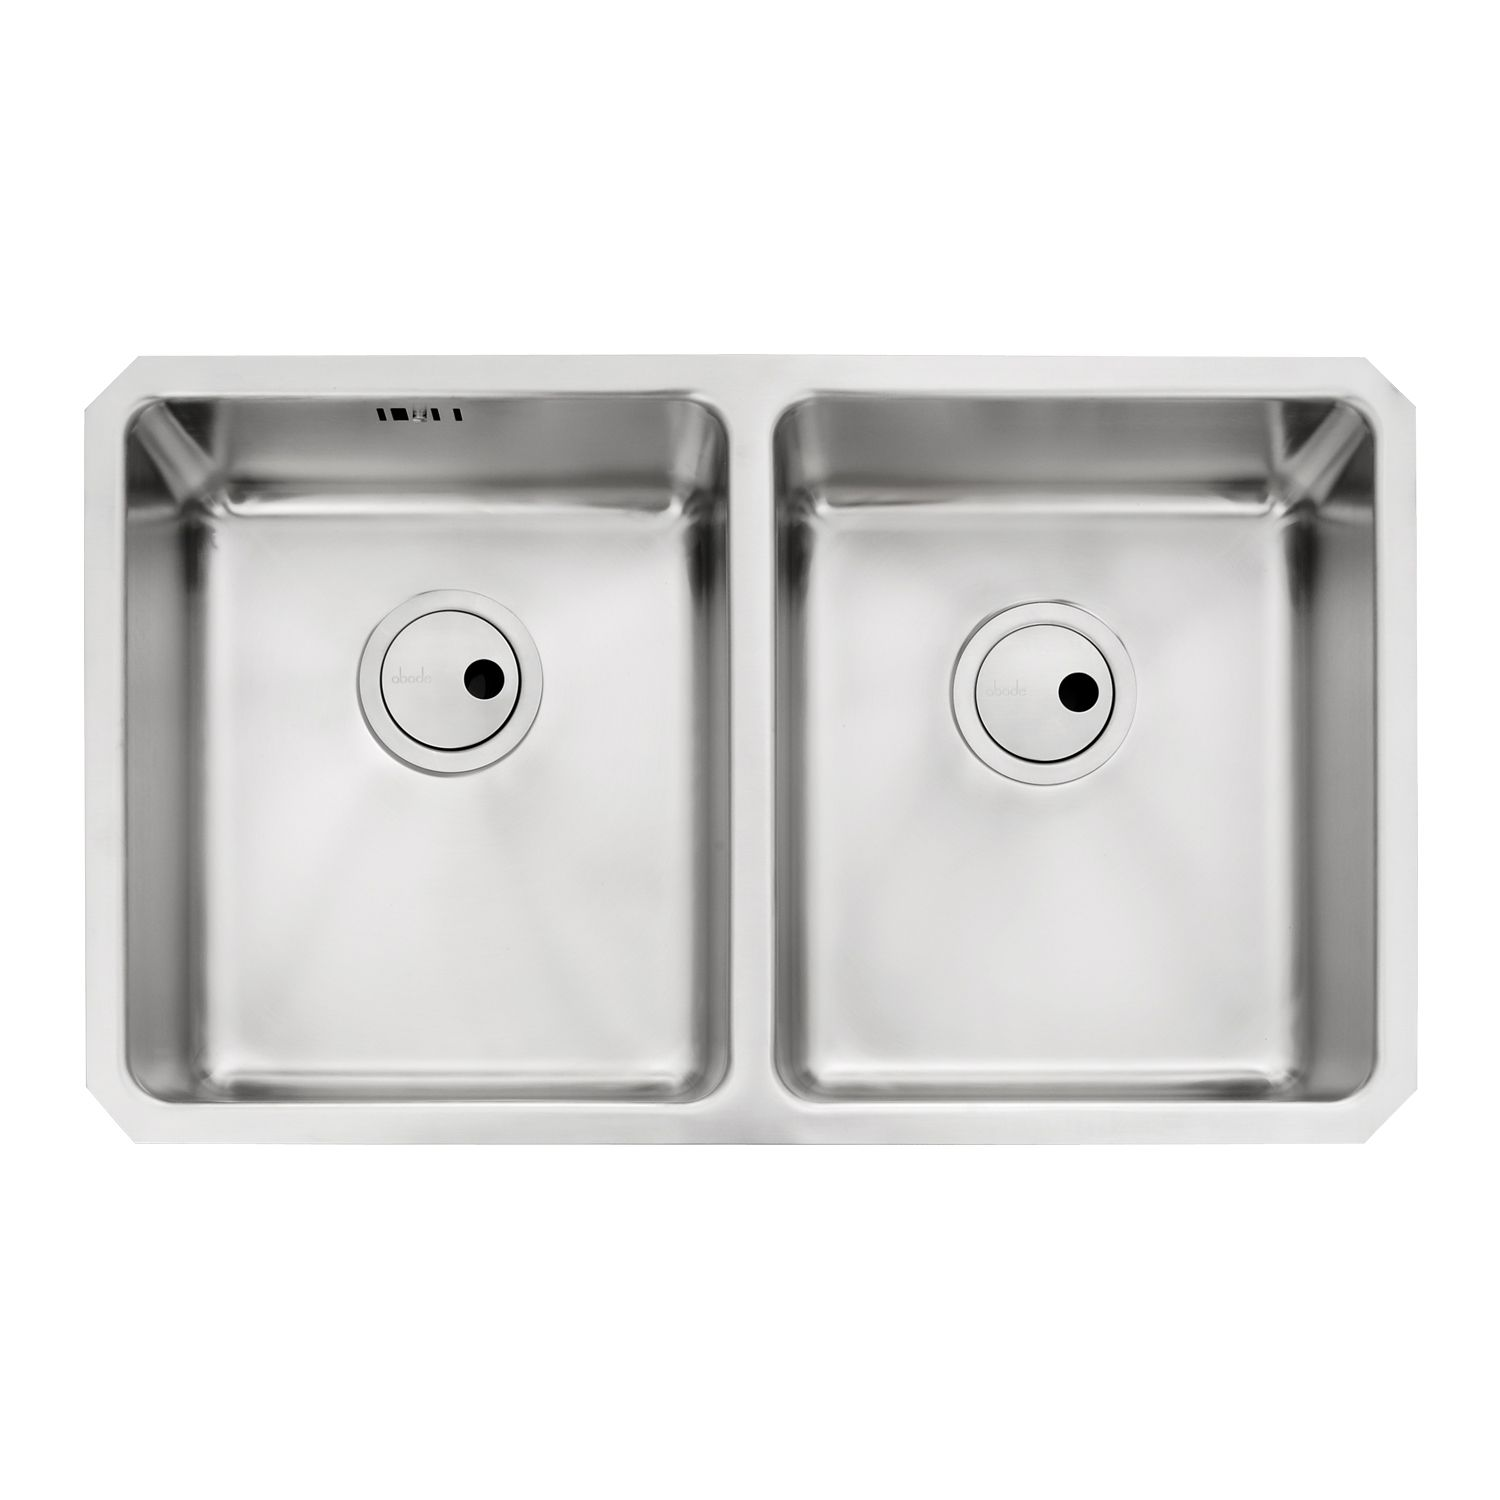 Abode AW5006 Matrix R25 2.0 Bowl Sink - Sinks-Taps.com